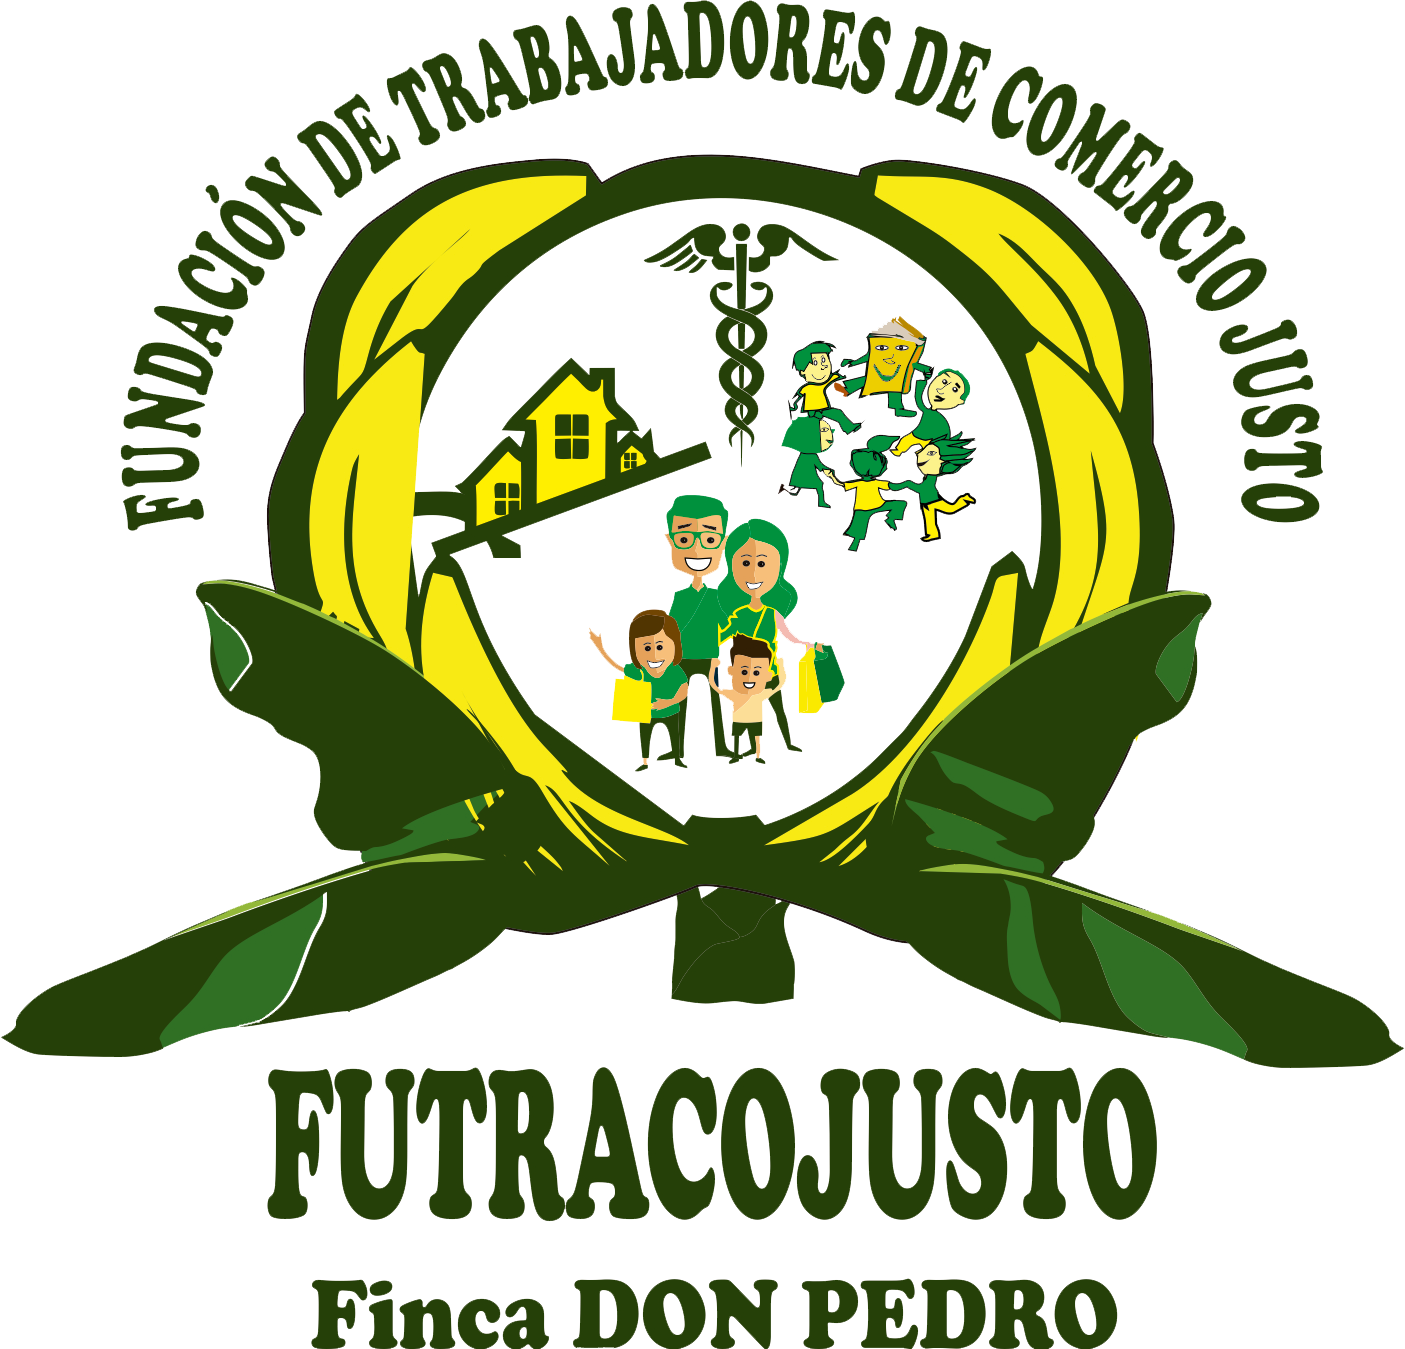 Futracojusto